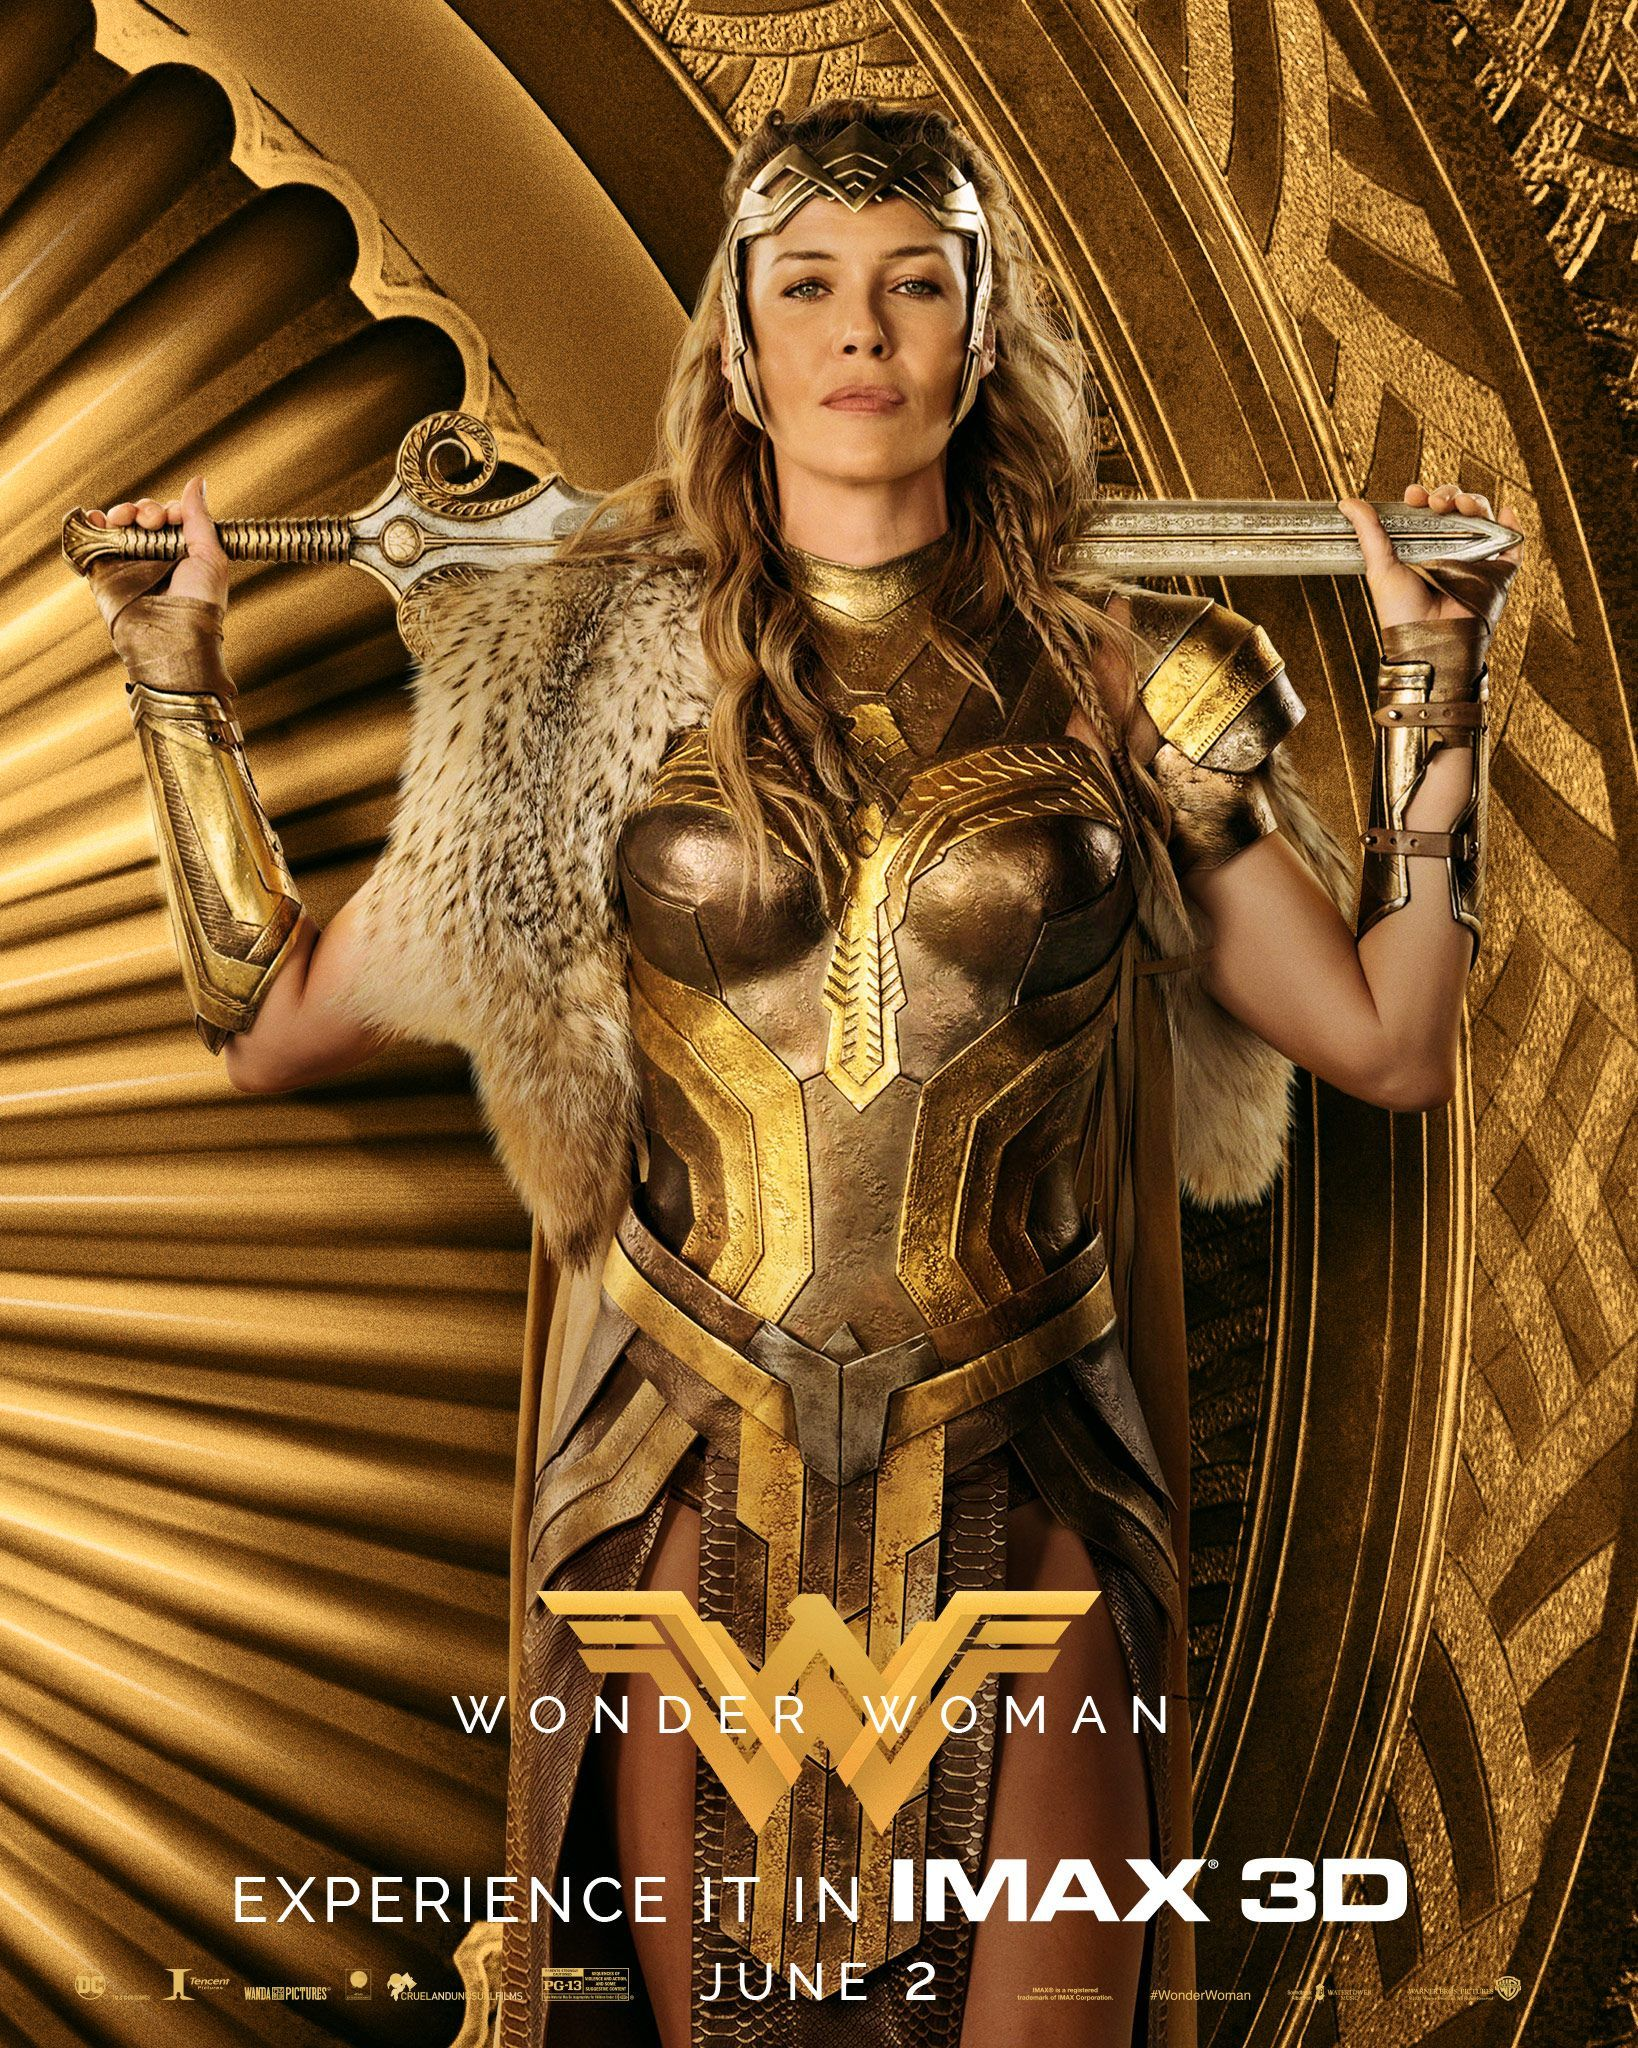 Wonder Woman Starring Connie Nielsen As Queen Hippolyta In Theaters June 2 In Imax 3d Wonder Woman Movie Amazons Wonder Woman Wonder Woman 2017 Poster